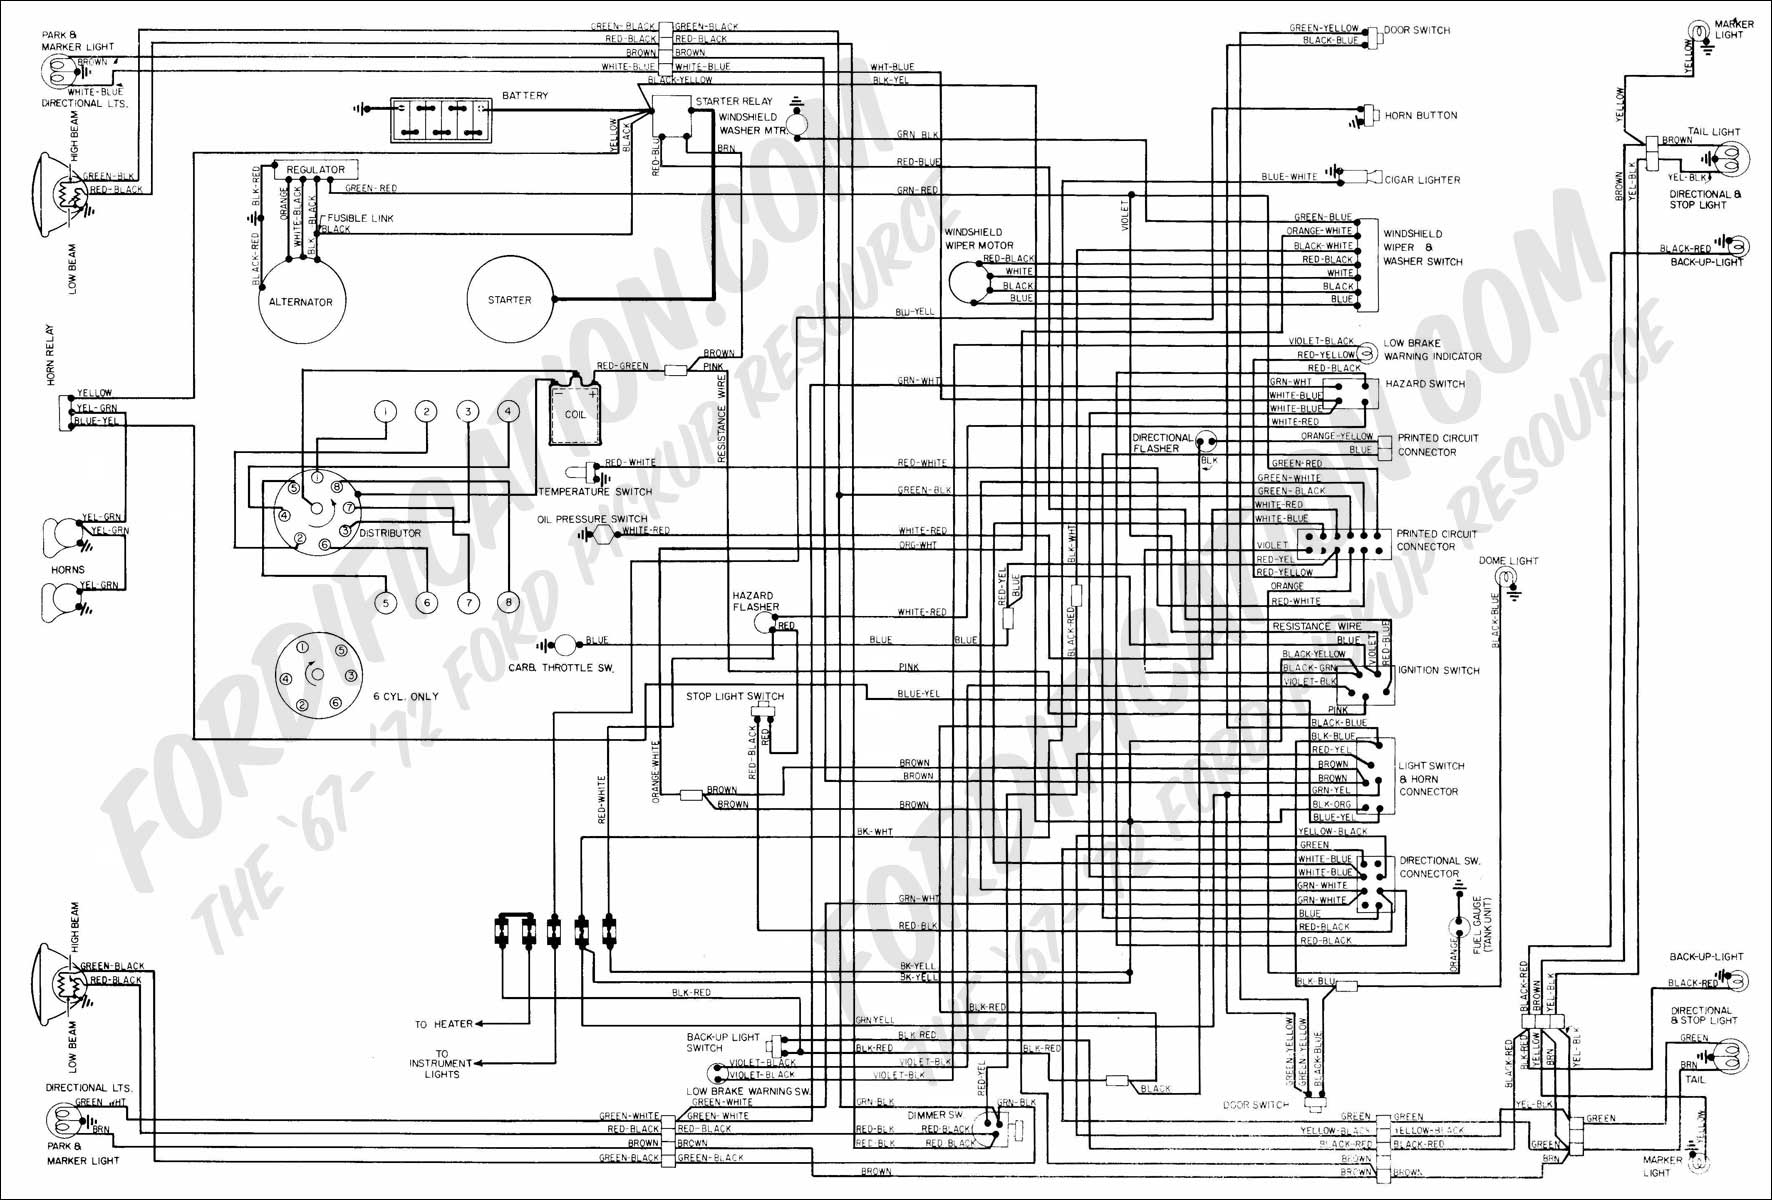 wiring diagram 72_quick schematic wiring readingrat net electrical schematic diagrams at gsmportal.co